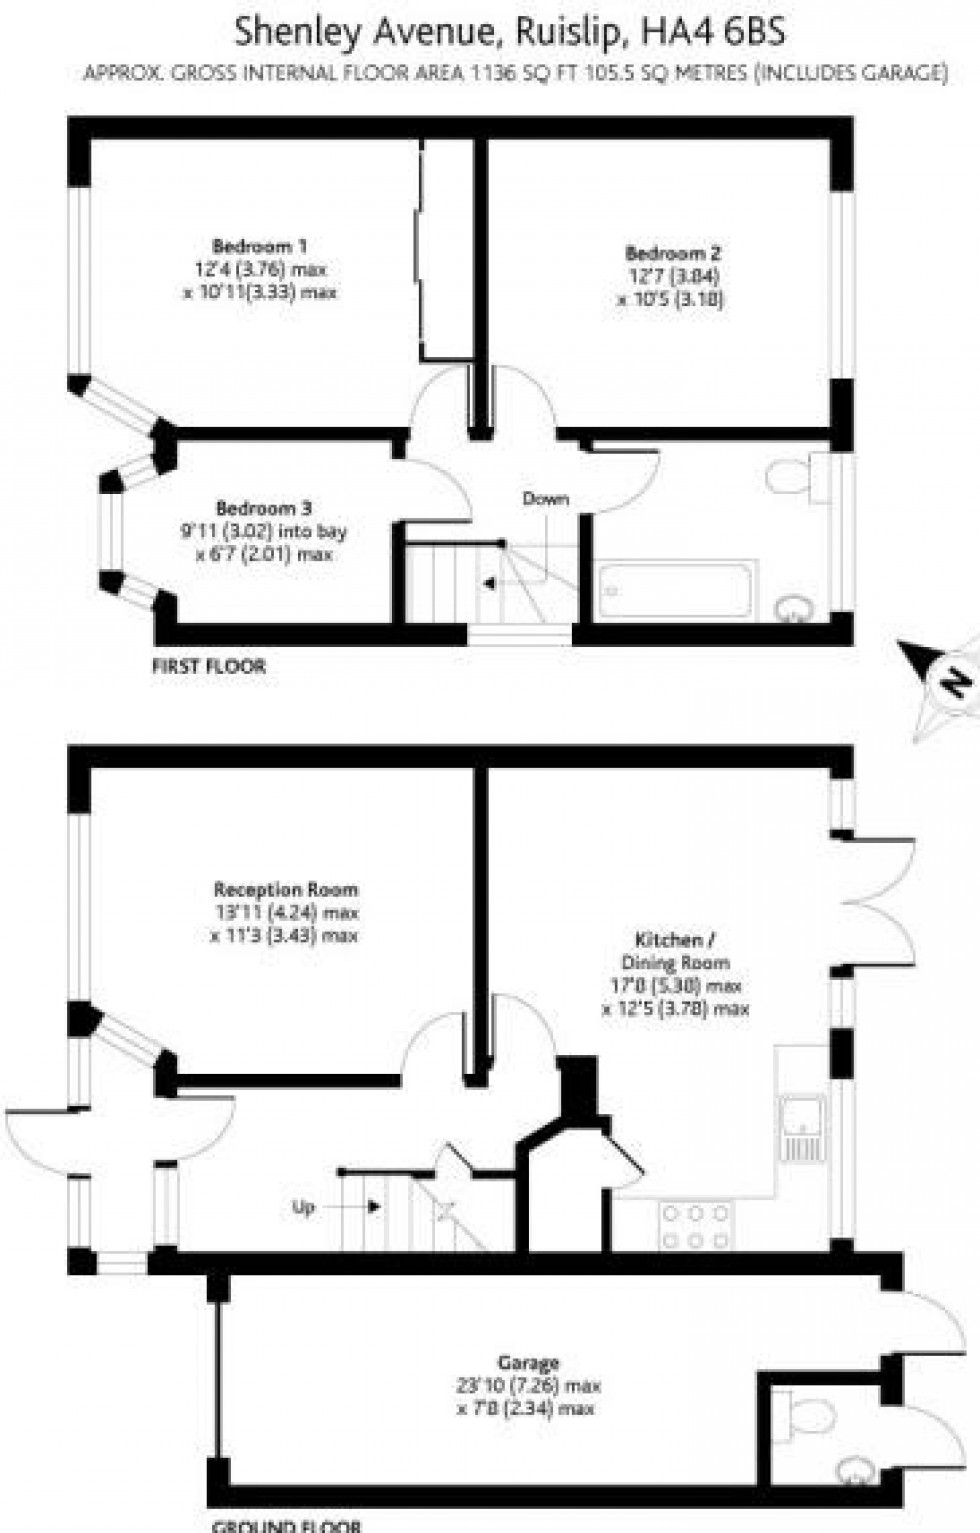 Floorplan for Shenley Avenue, Ruislip, Middlesex, HA4